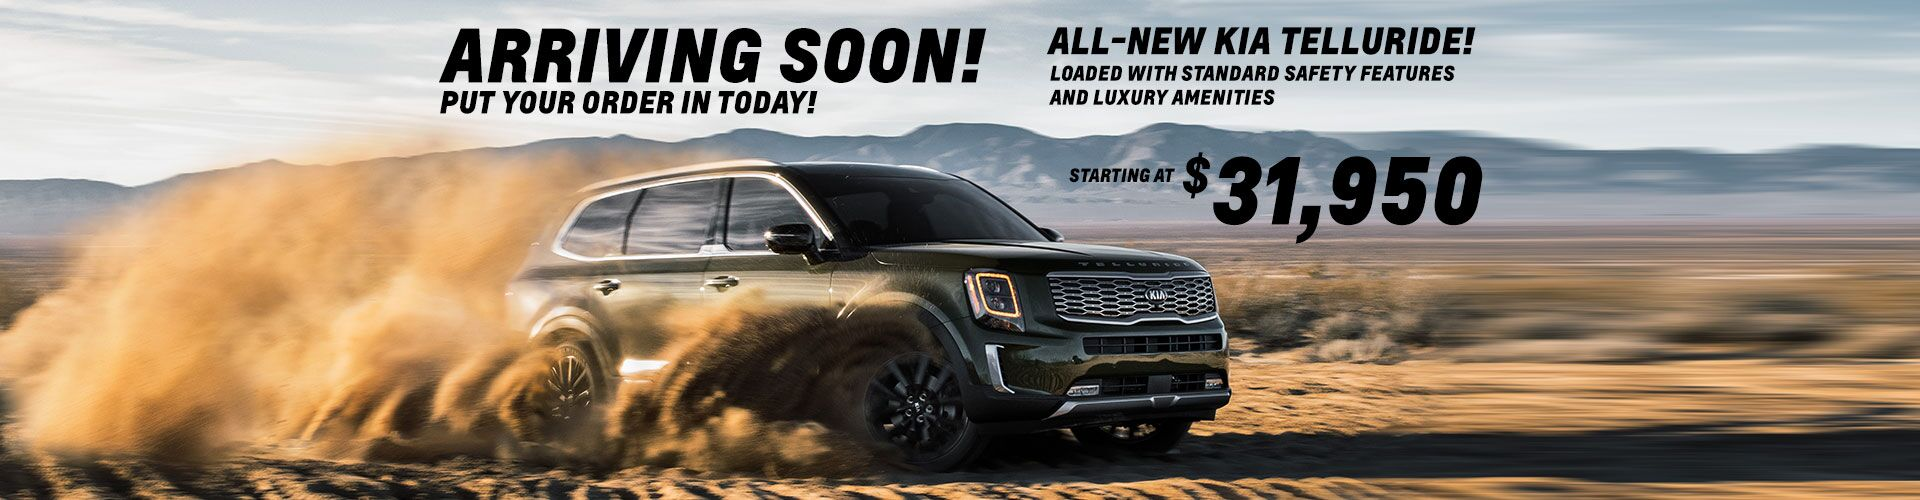 Coming Soon - Kia Telluride